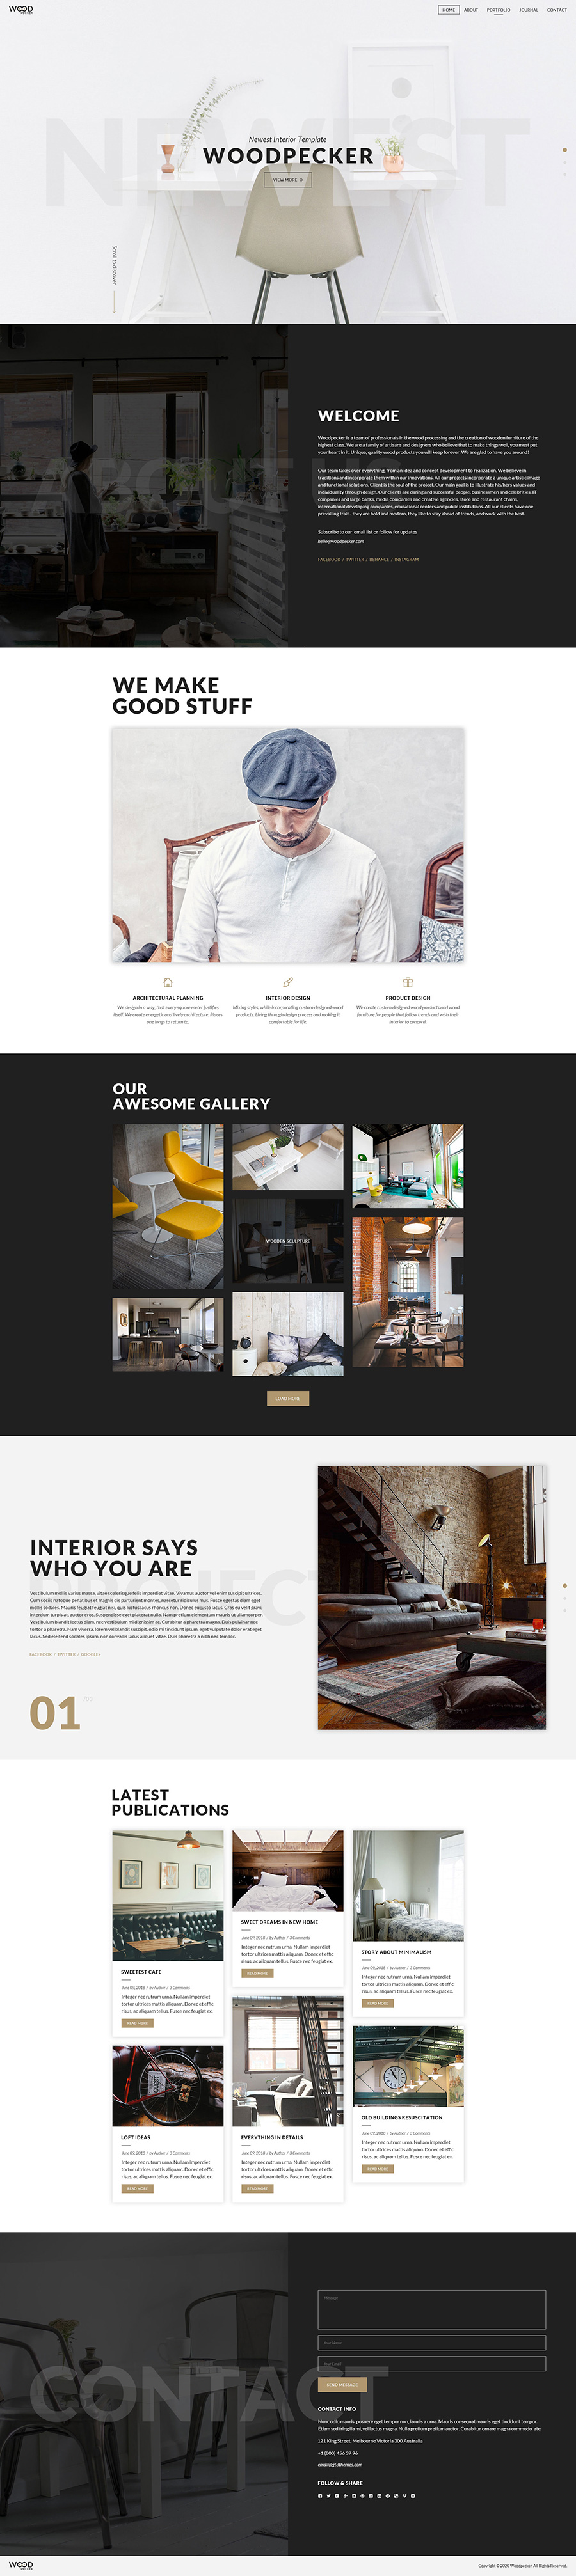 woodpecker-interior-psd-template